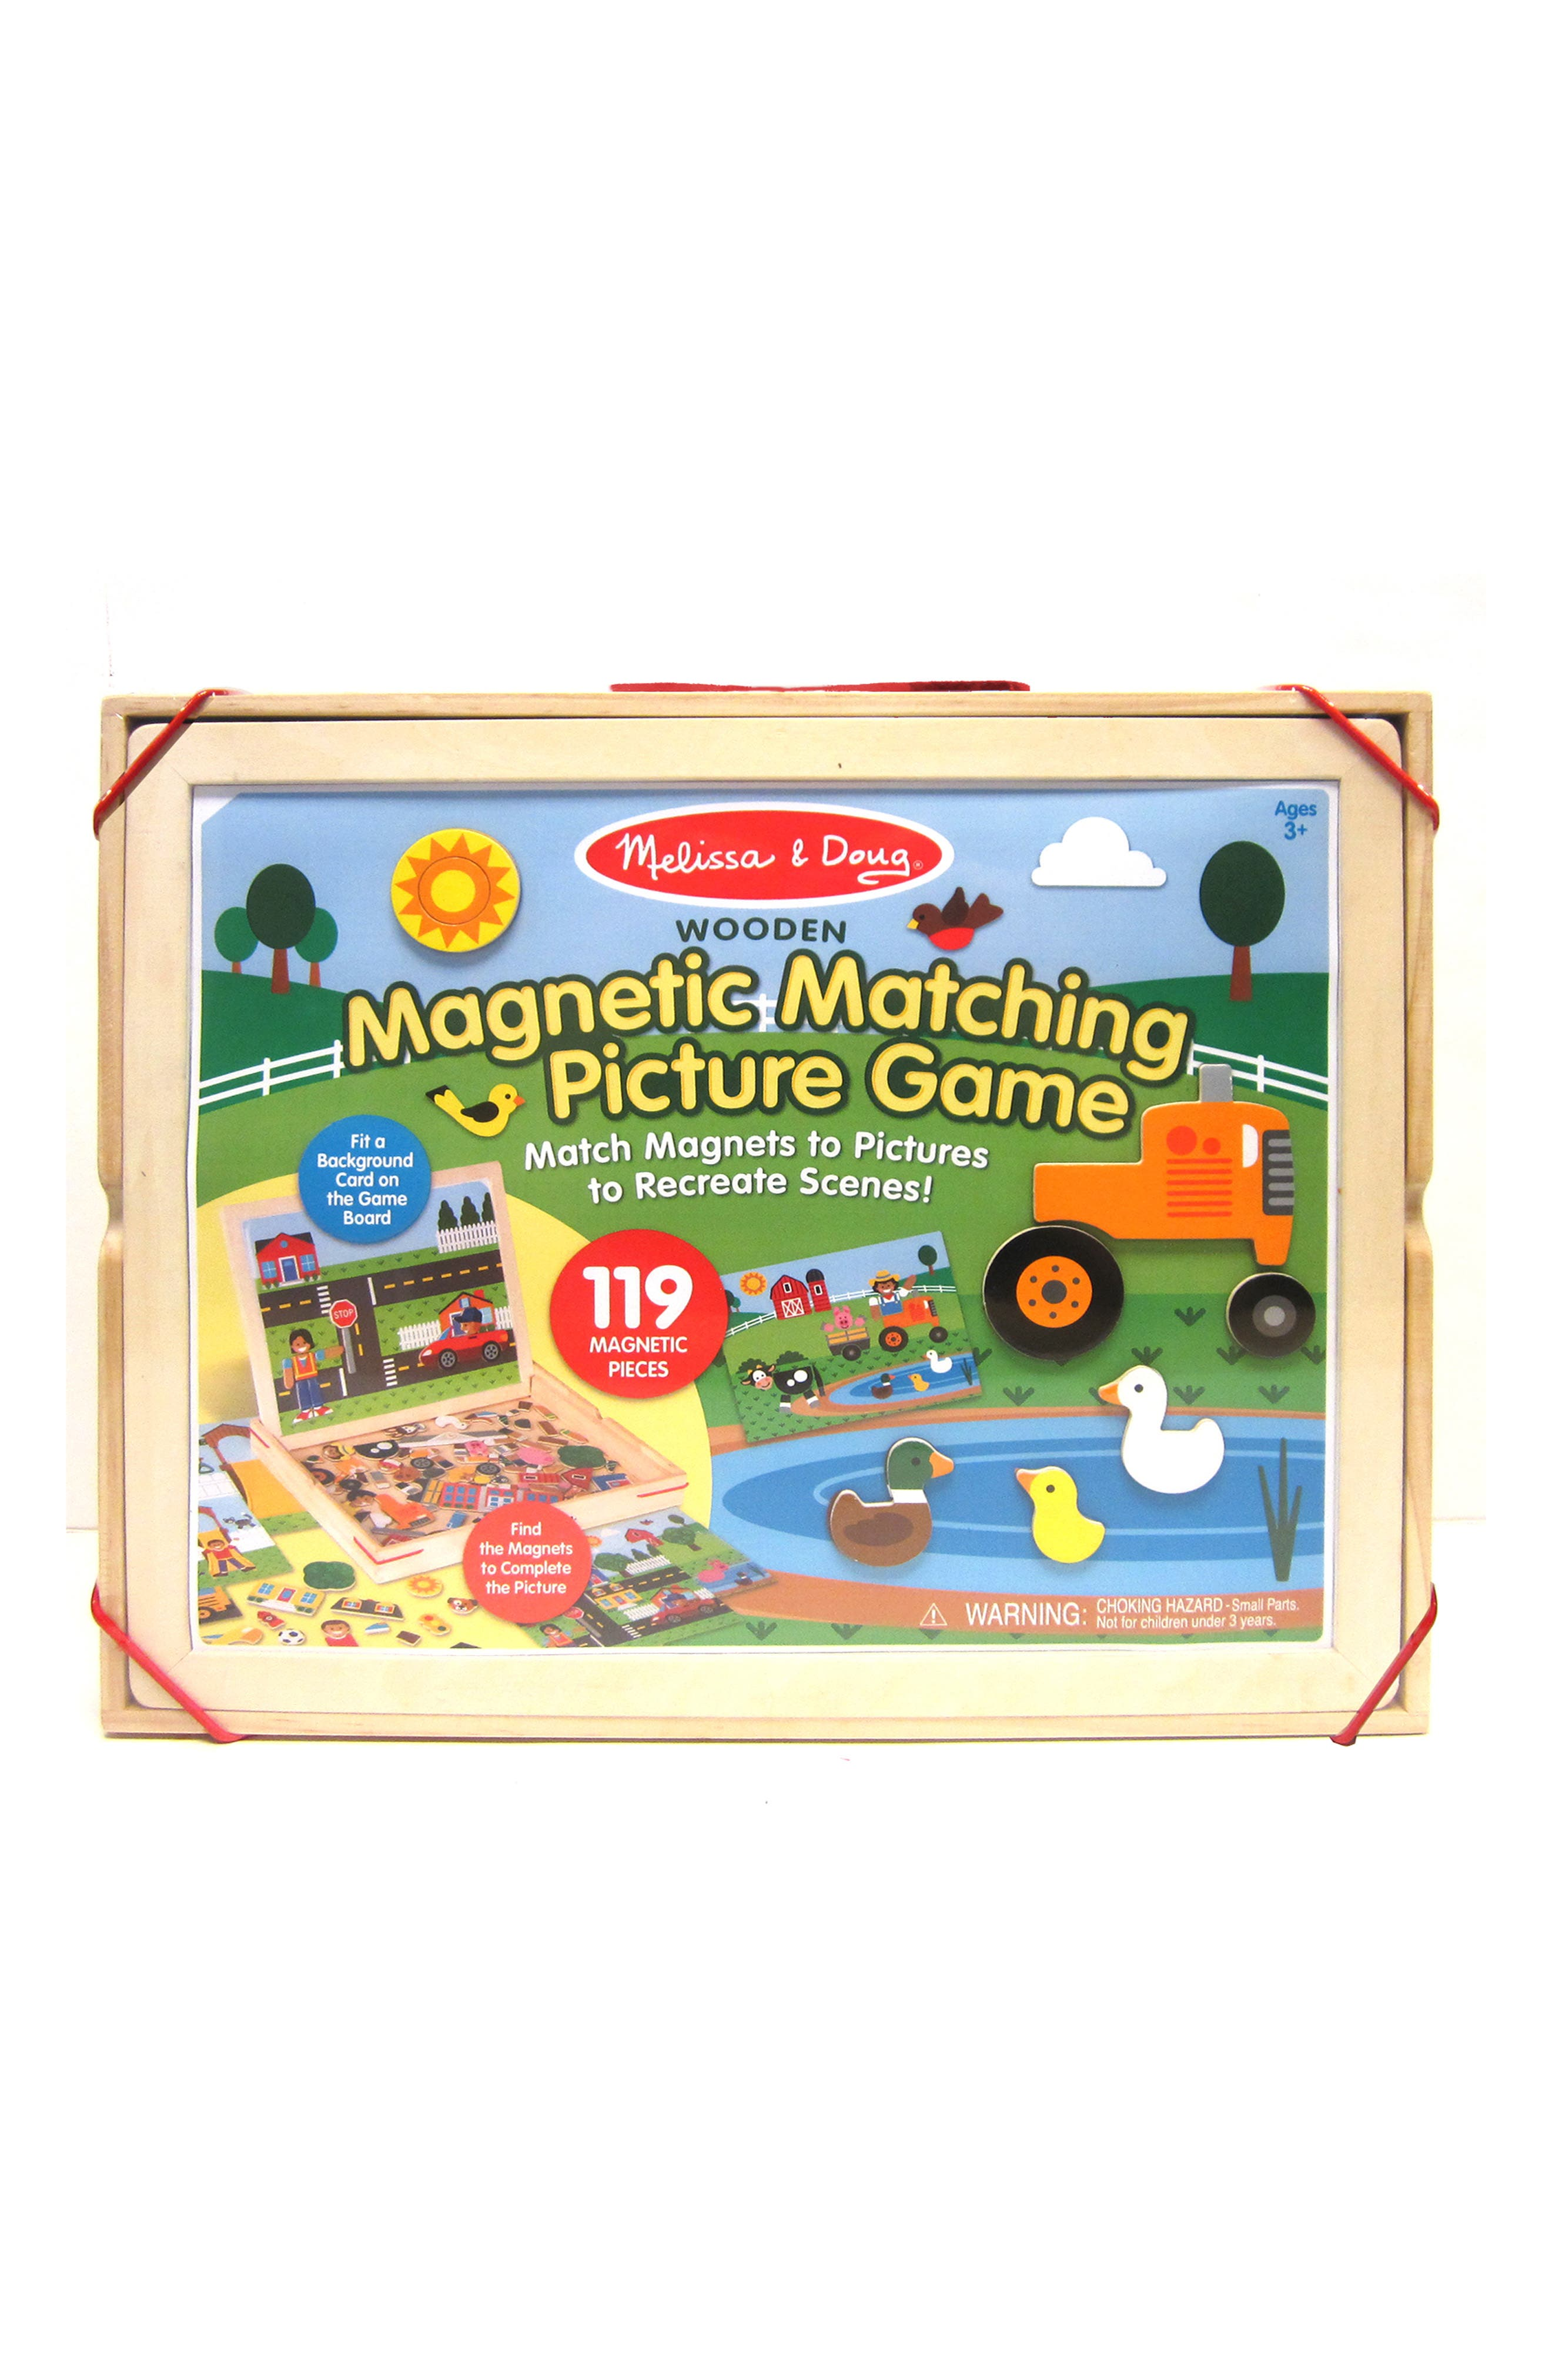 MELISSA & DOUG Wooden Magnetic Matching Picture Game Play Set, Main, color, 960